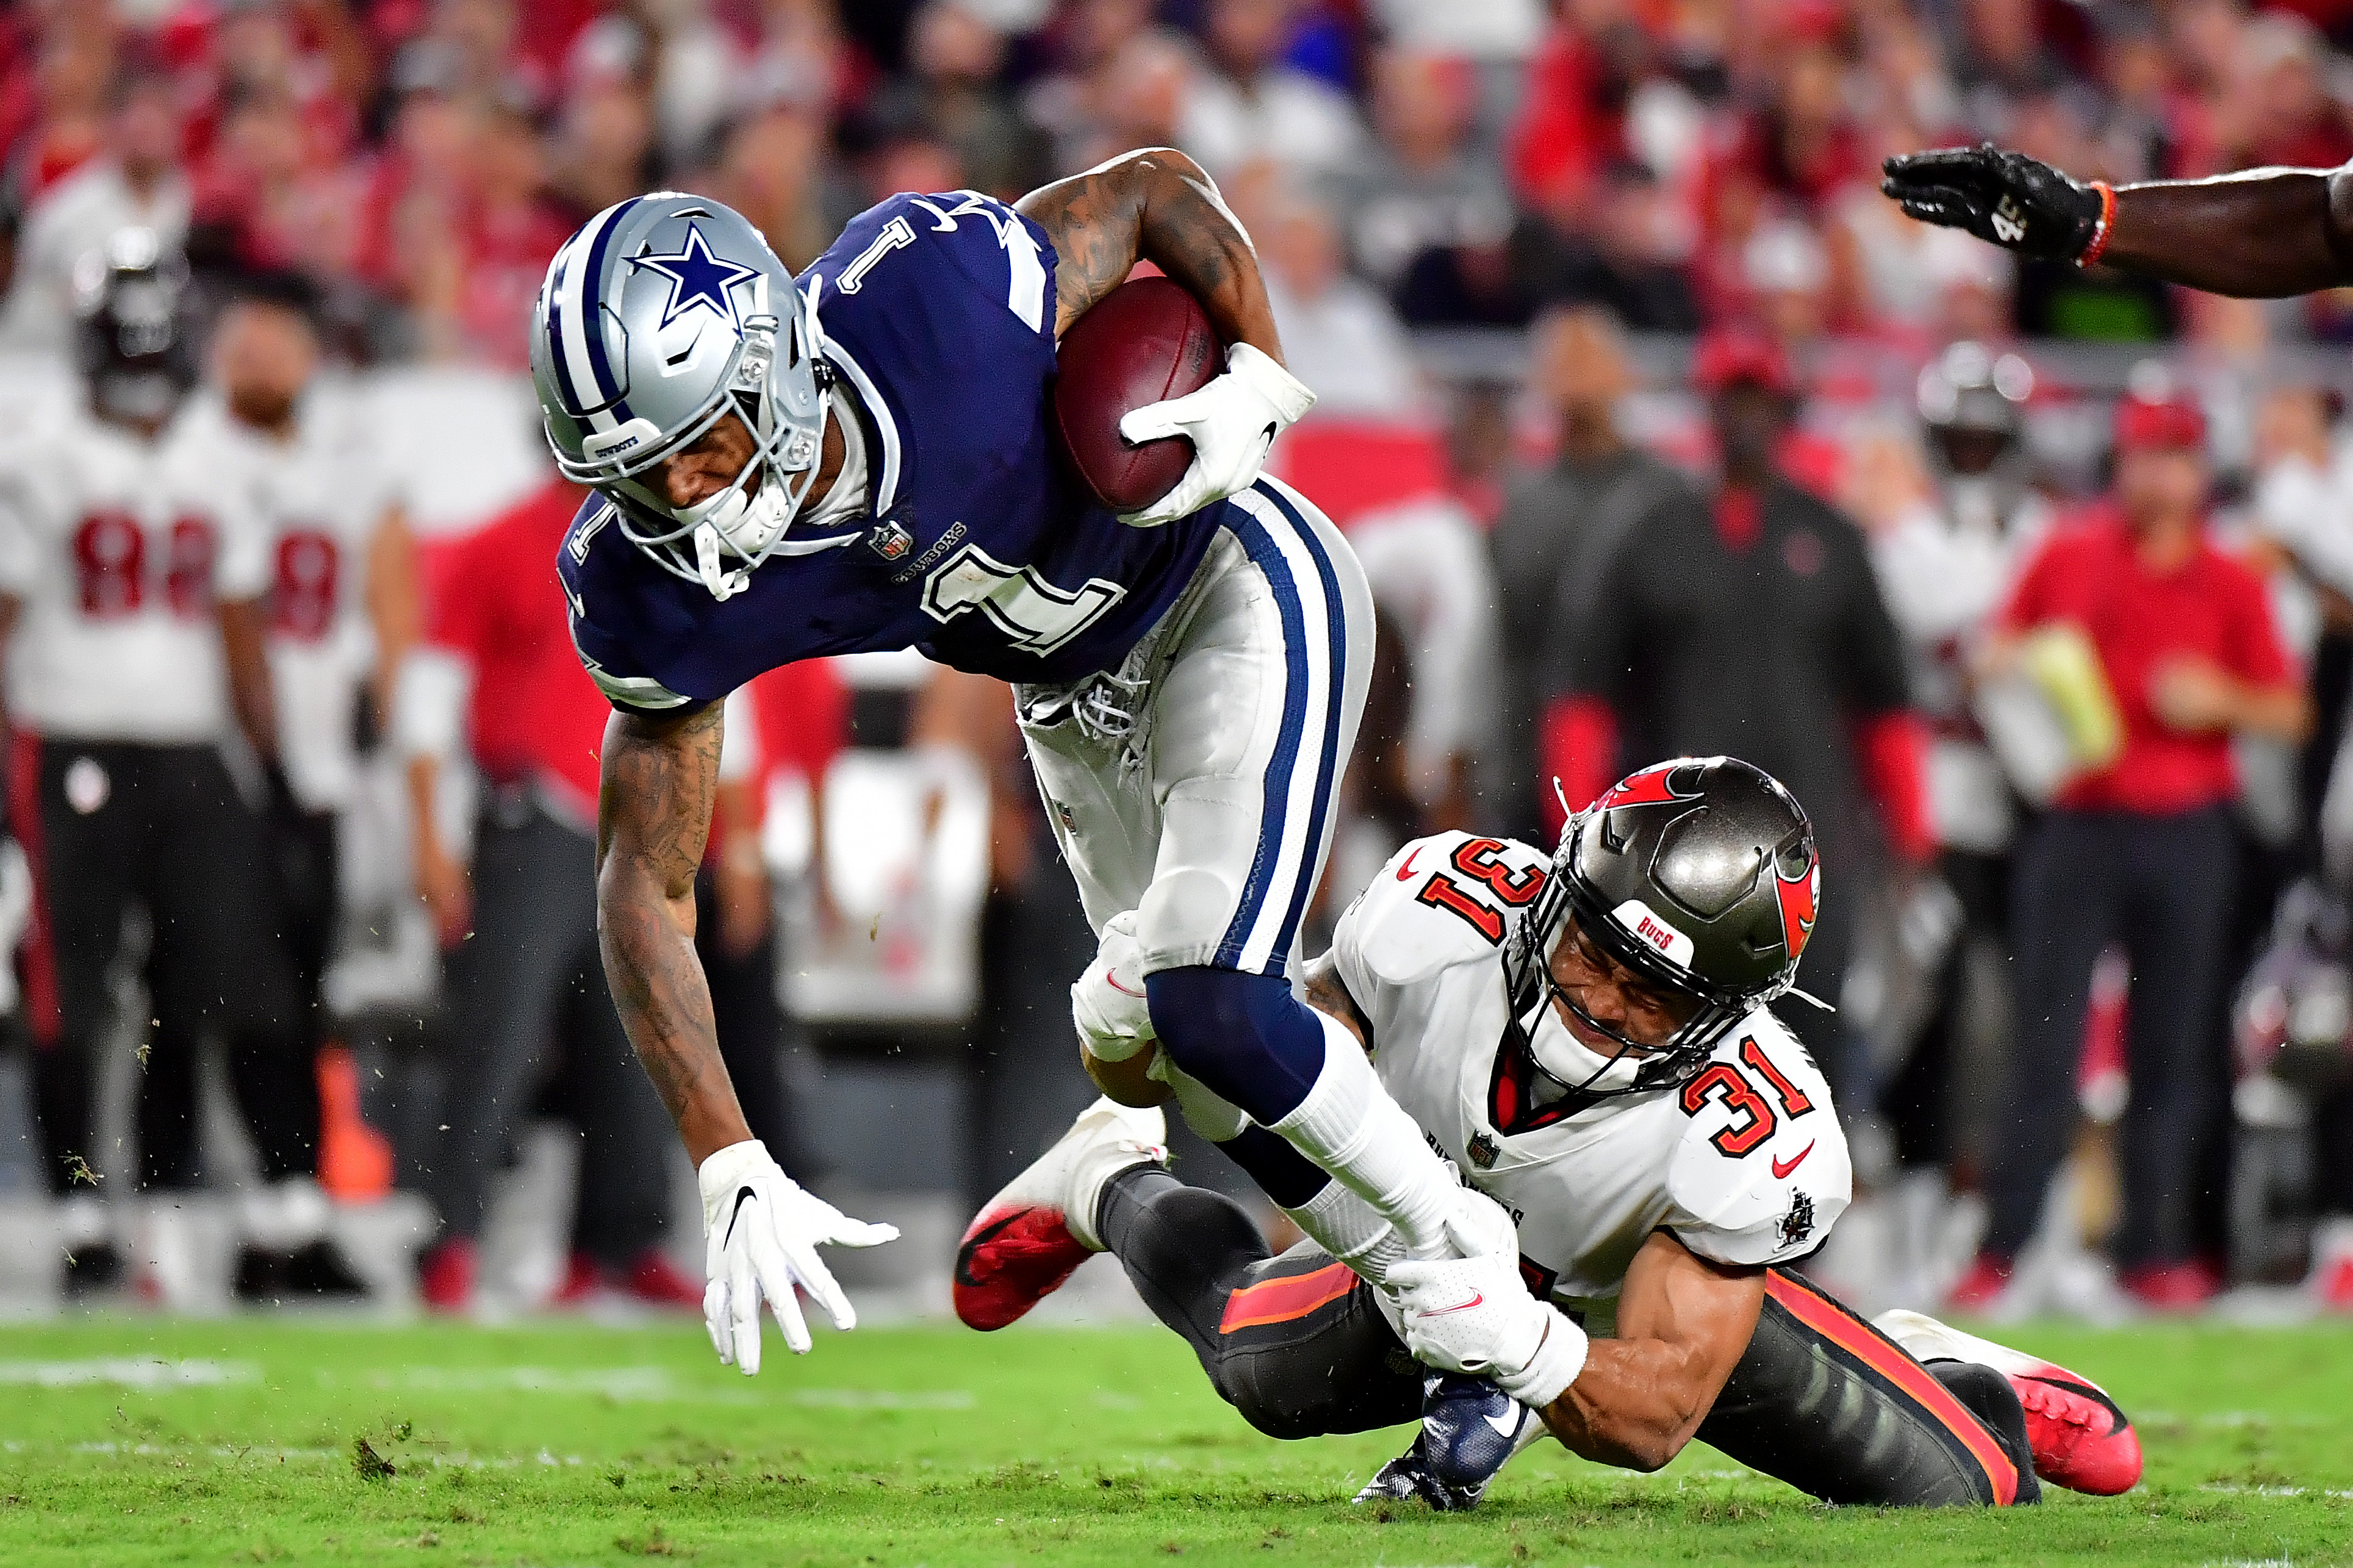 Cedrick Wilson #1 of the Dallas Cowboys carries the ball for a first down against Antoine Winfield Jr. #31 of the Tampa Bay Buccaneers during the second quarter at Raymond James Stadium on September 09, 2021 in Tampa, Florida.